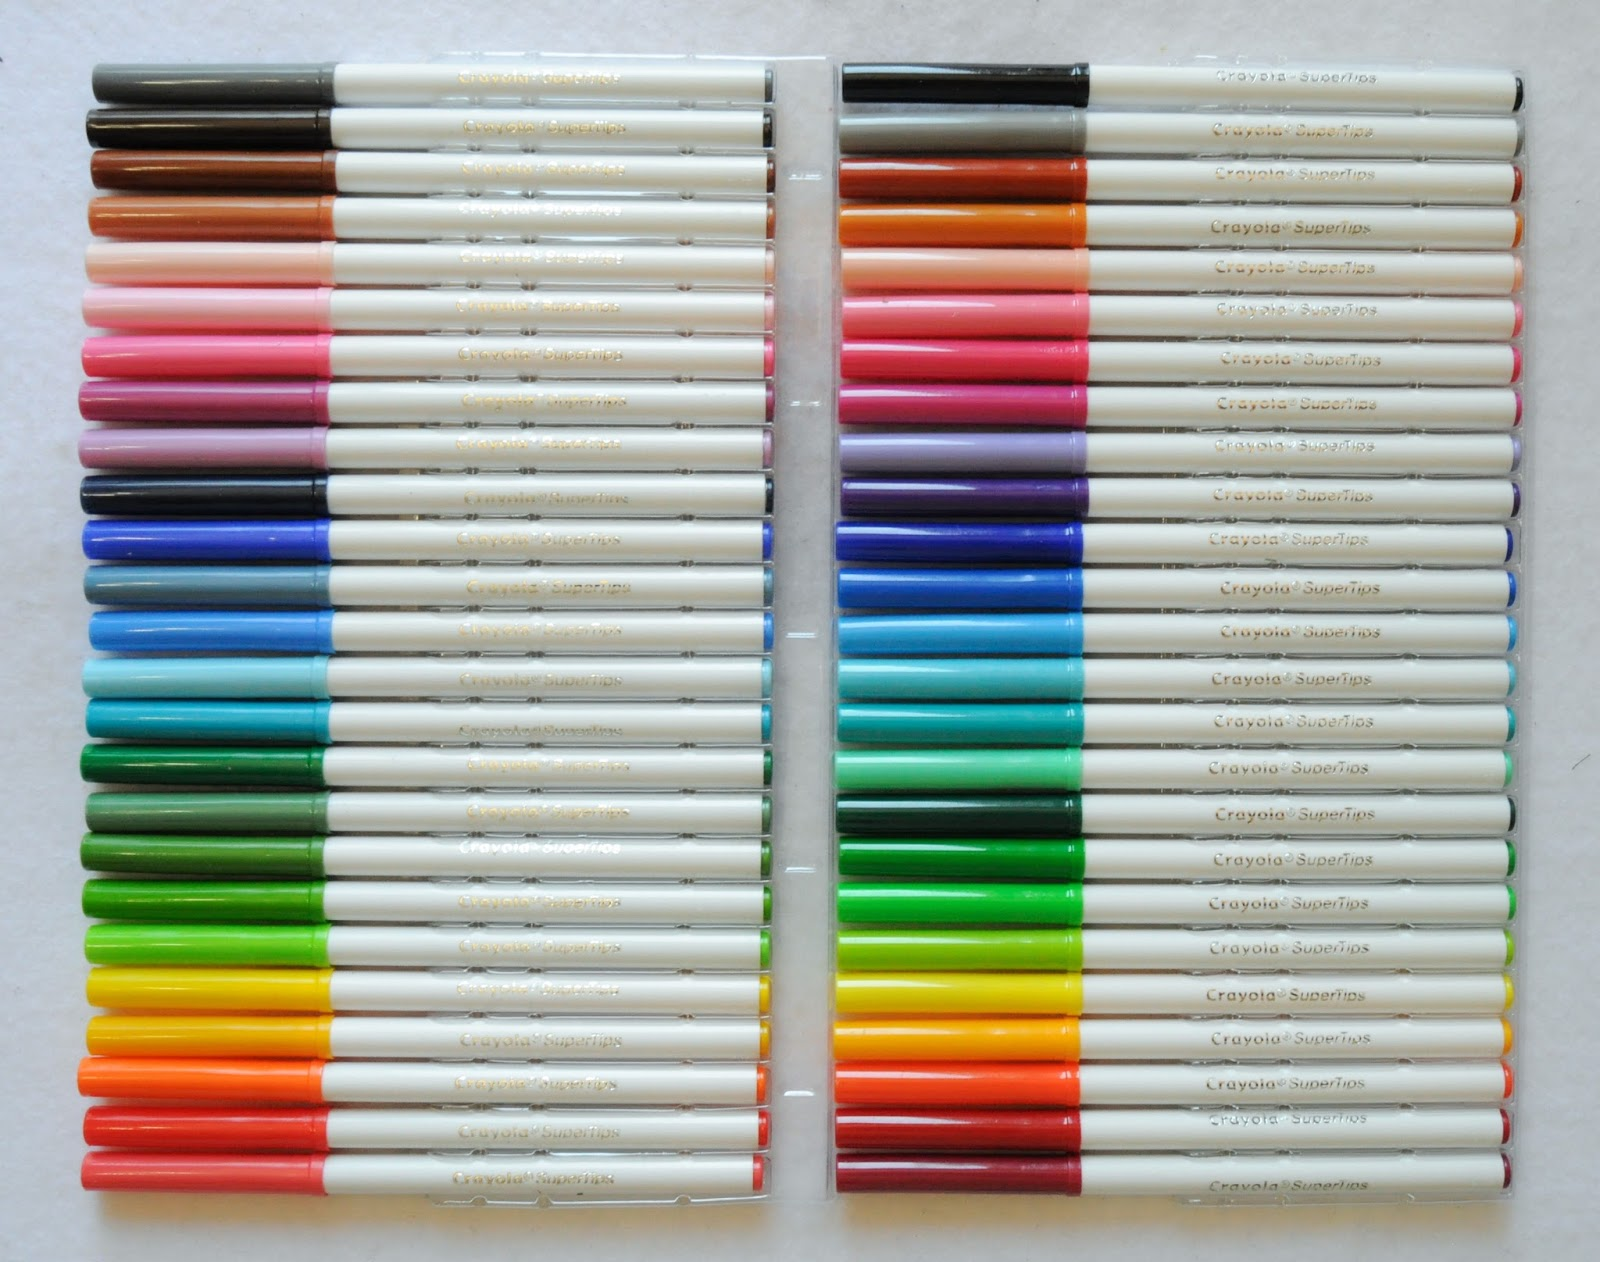 crayola super tips markers 2015 what s inside the box 20 and 50